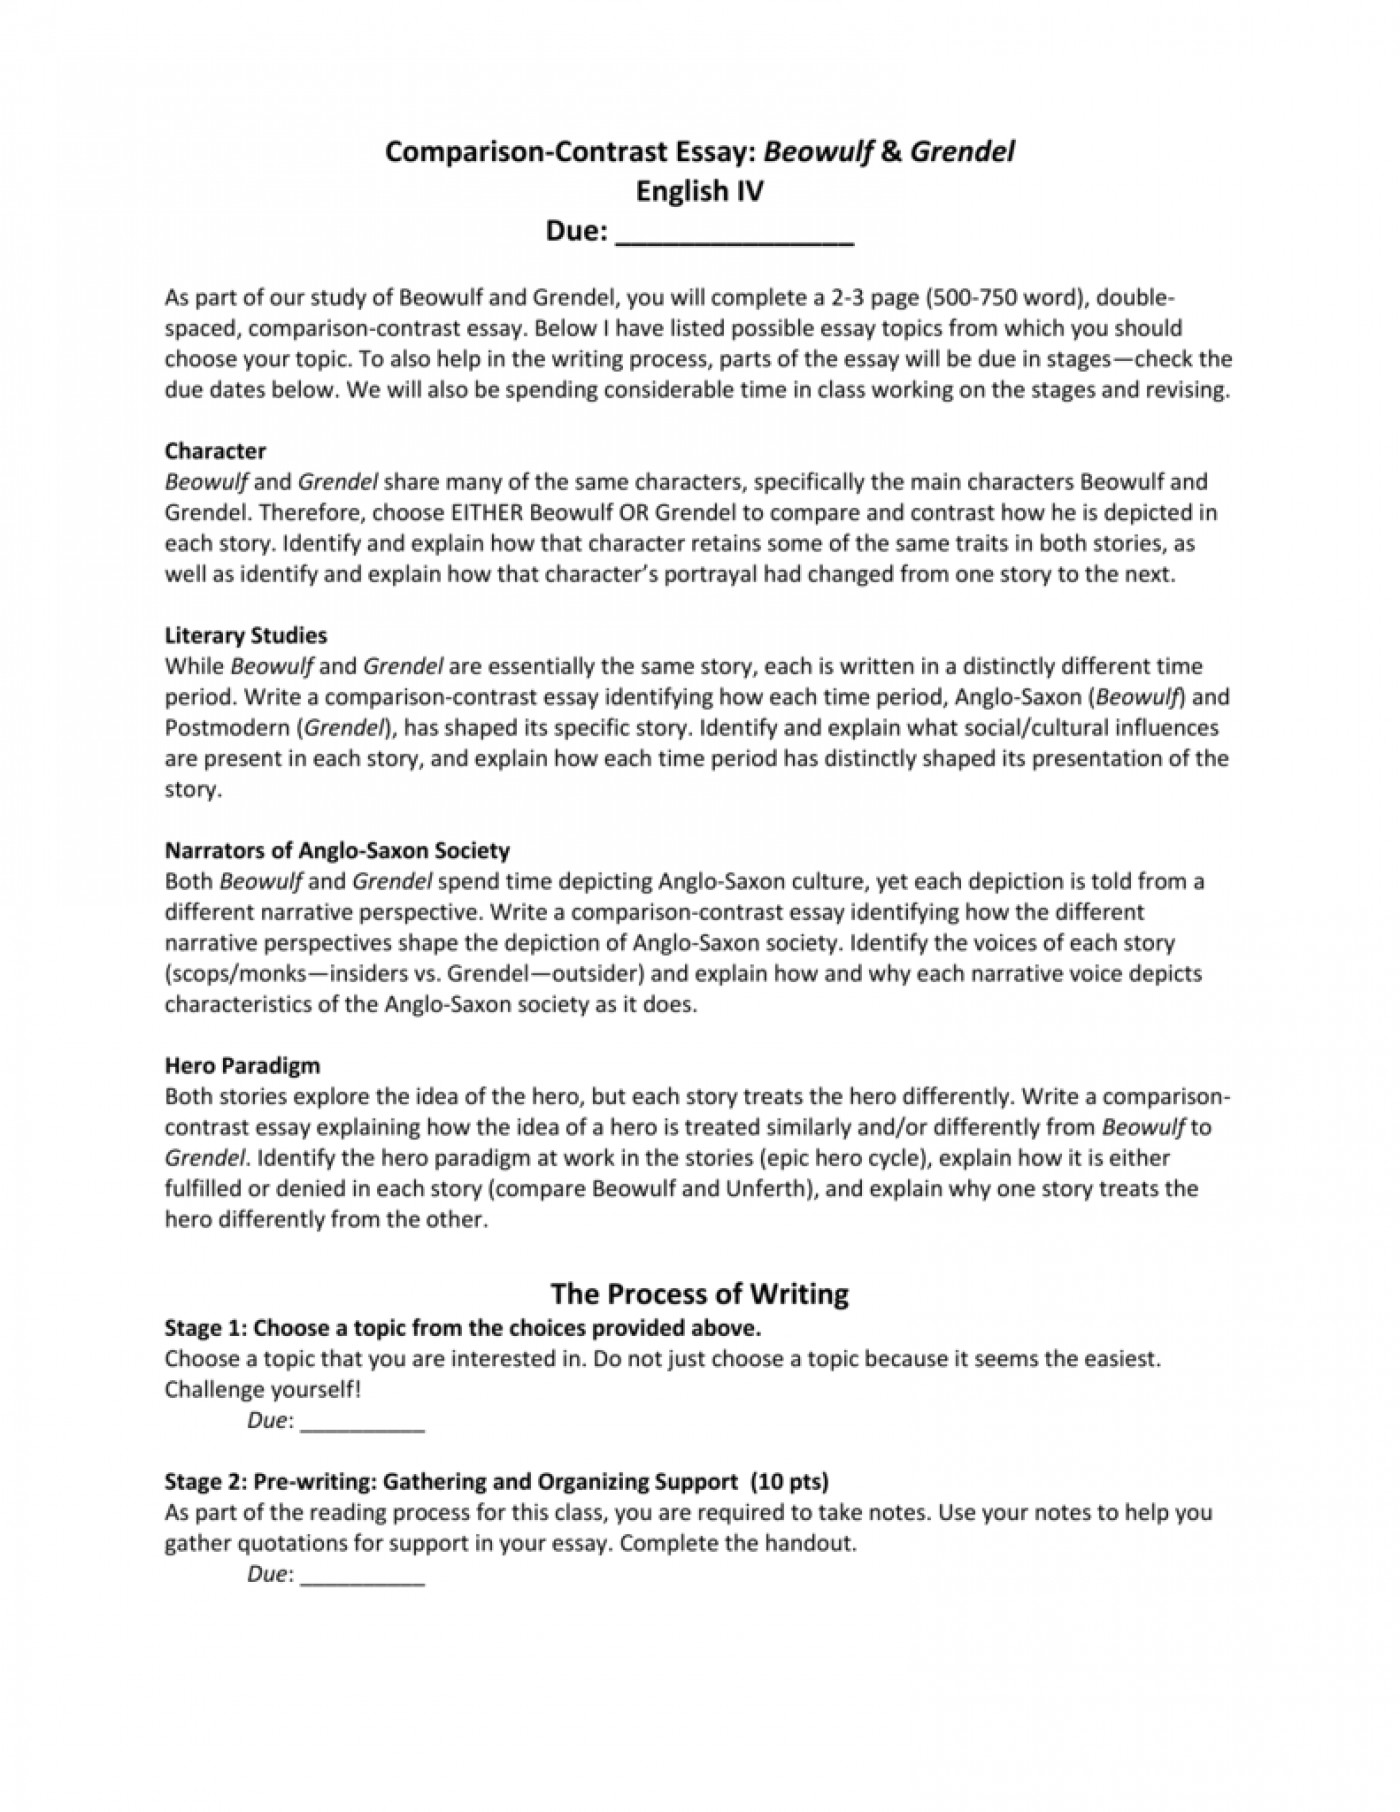 010 Compare And Contrast Essay 008061732 1 Frightening Sample 4th Grade Introduction Paragraph Ideas 1400